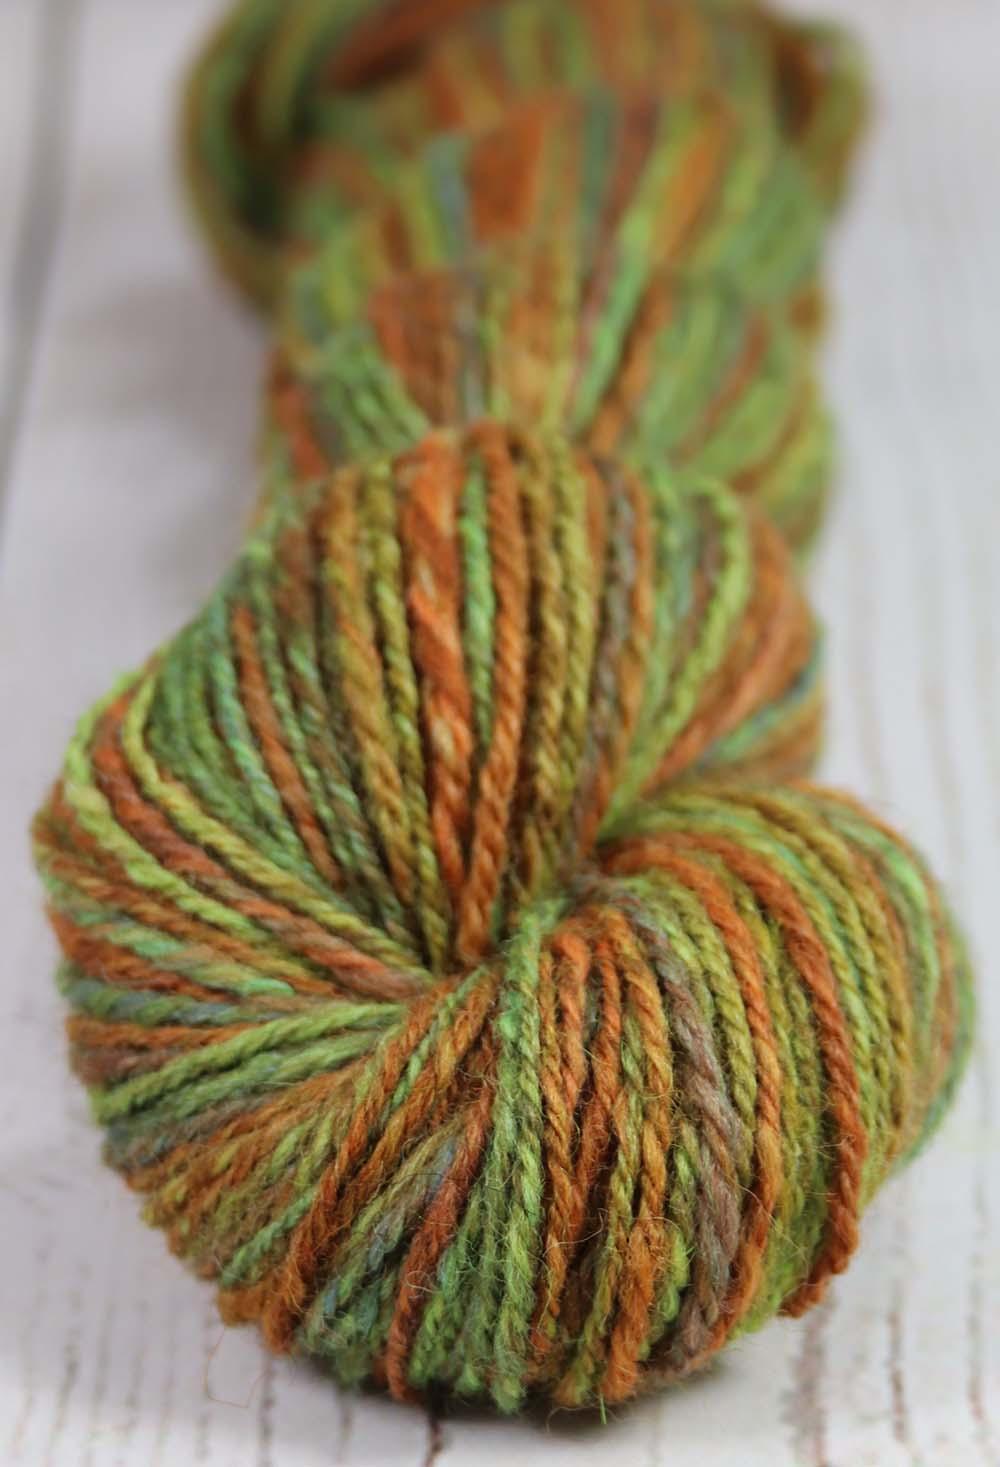 THE COLORFUL MR. G - Hand dyed, hand spun DK yarn